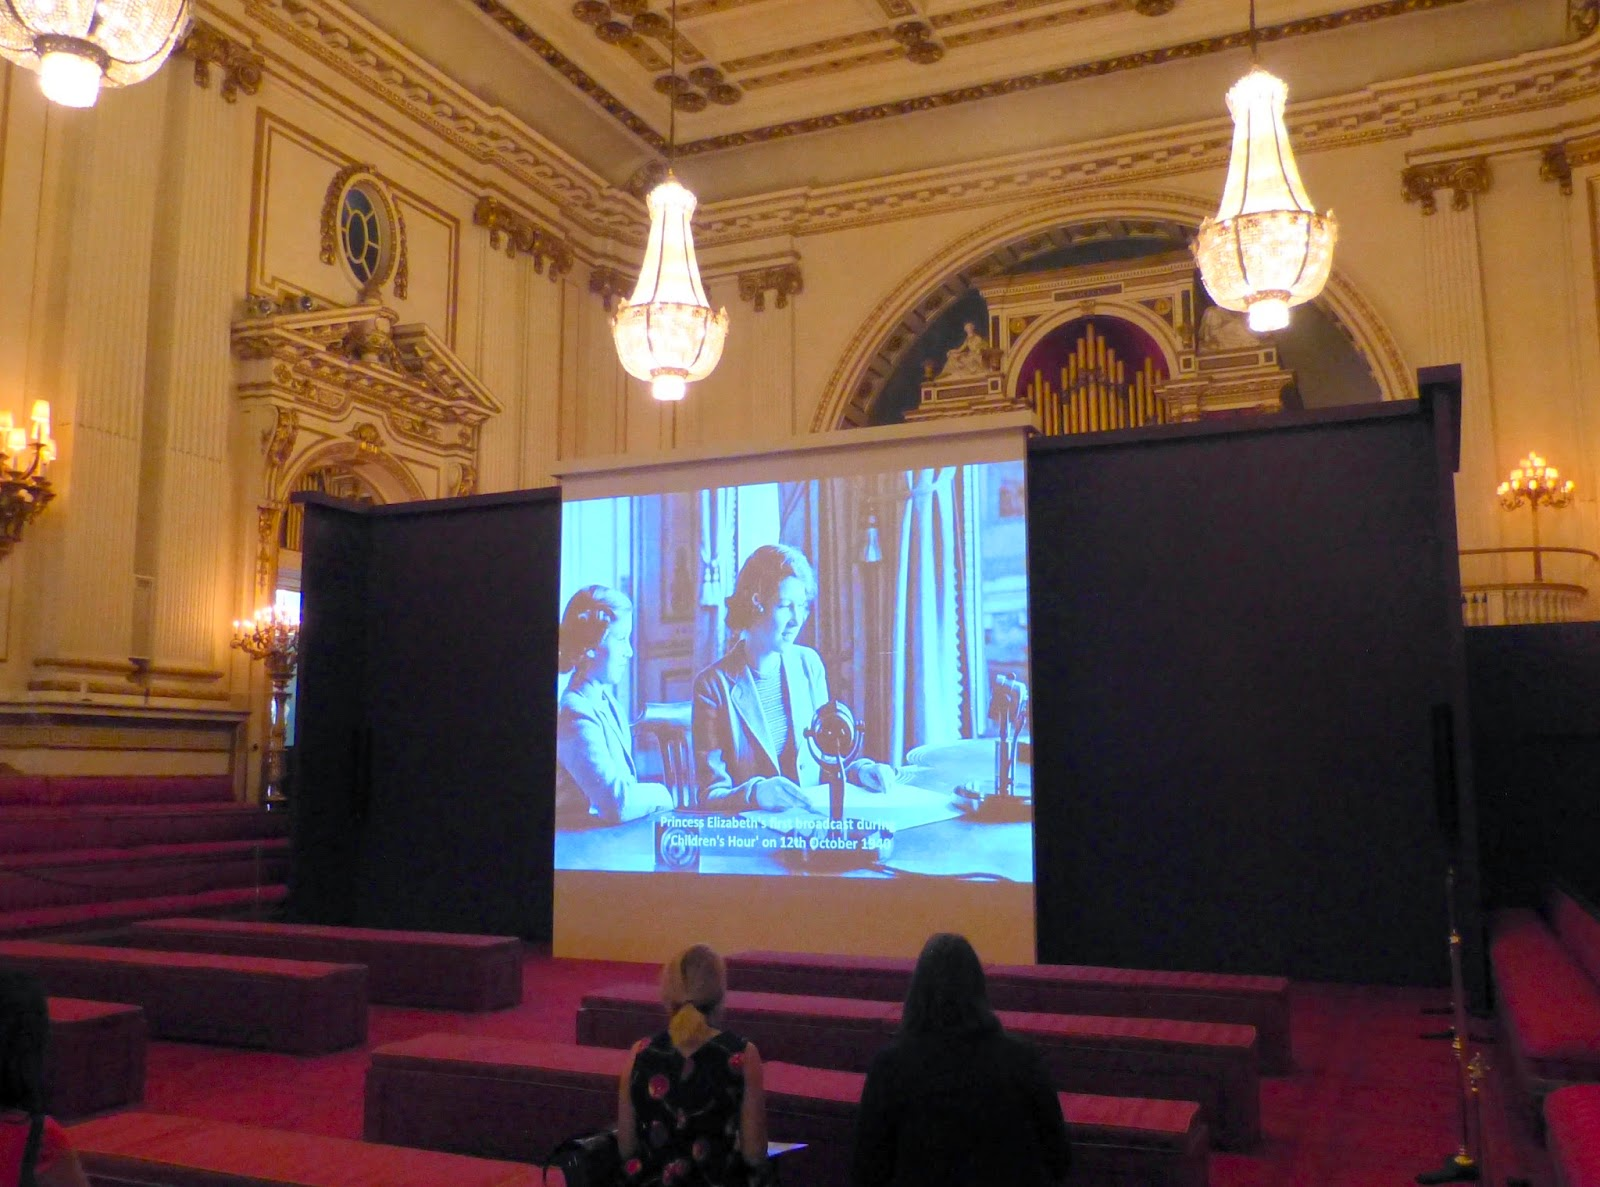 Footage about the Queen as a child being shown in The Ballroom